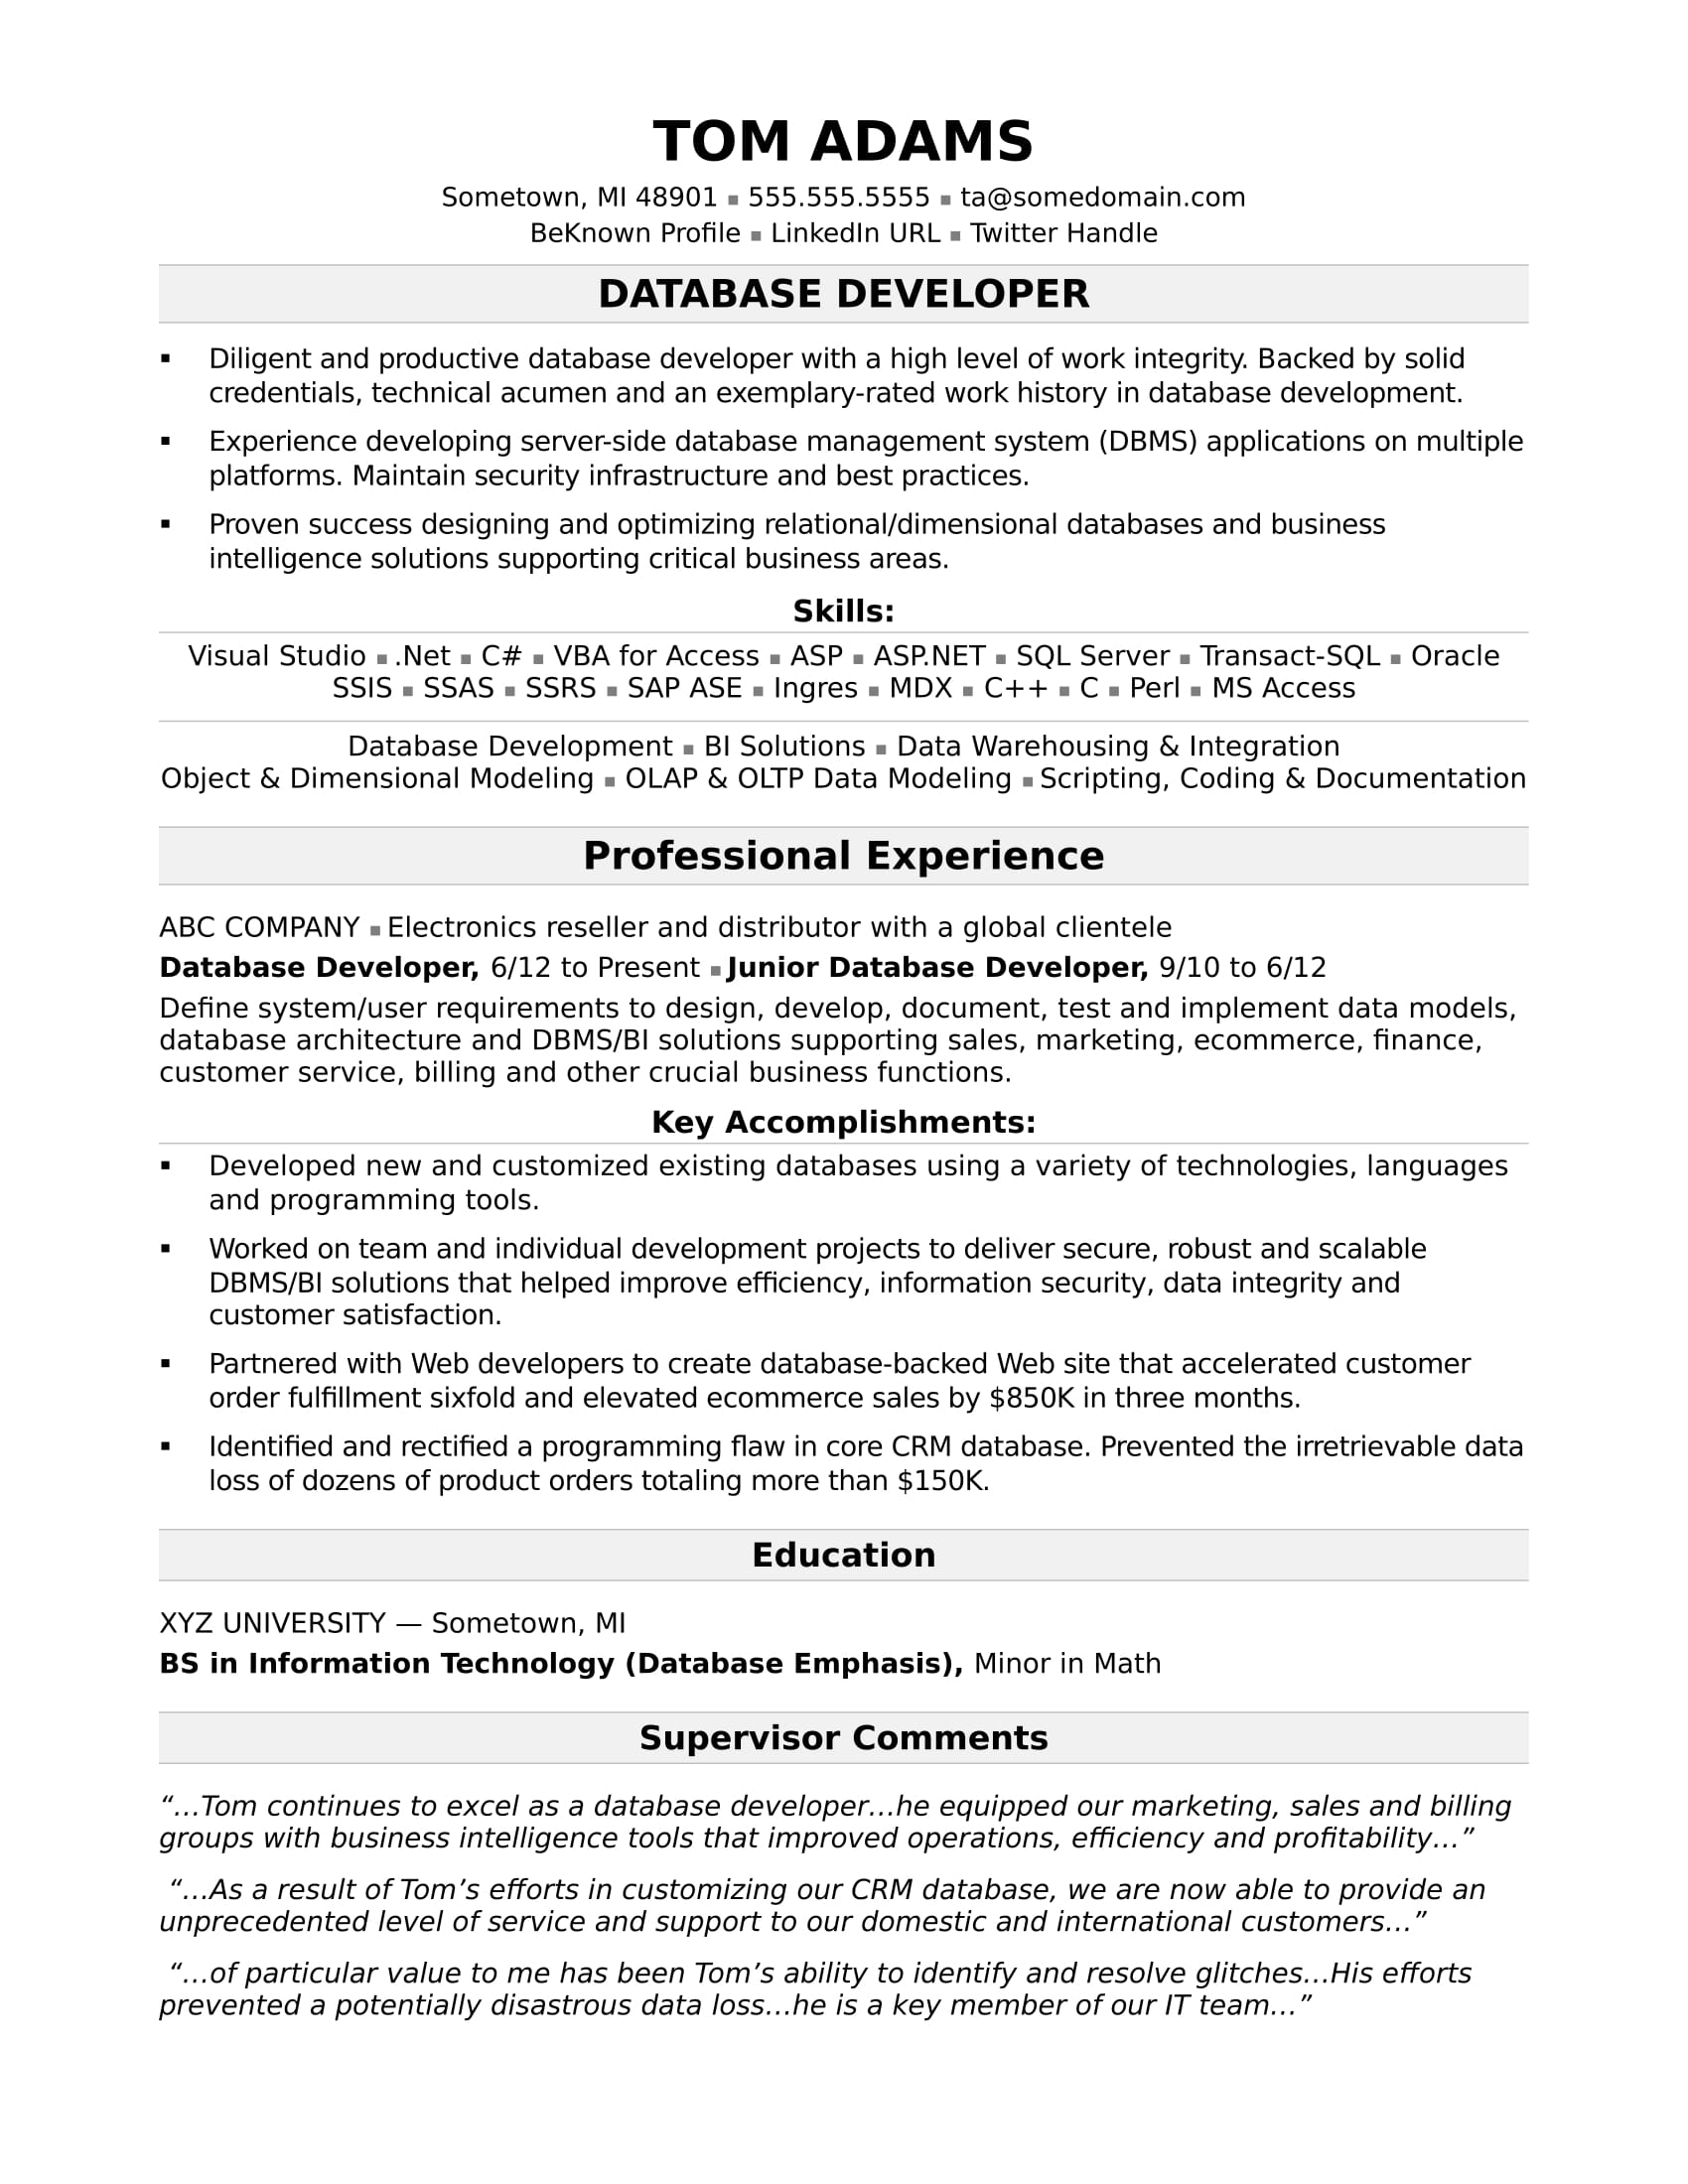 Sample Resume for a Midlevel IT Developer | Monster.com